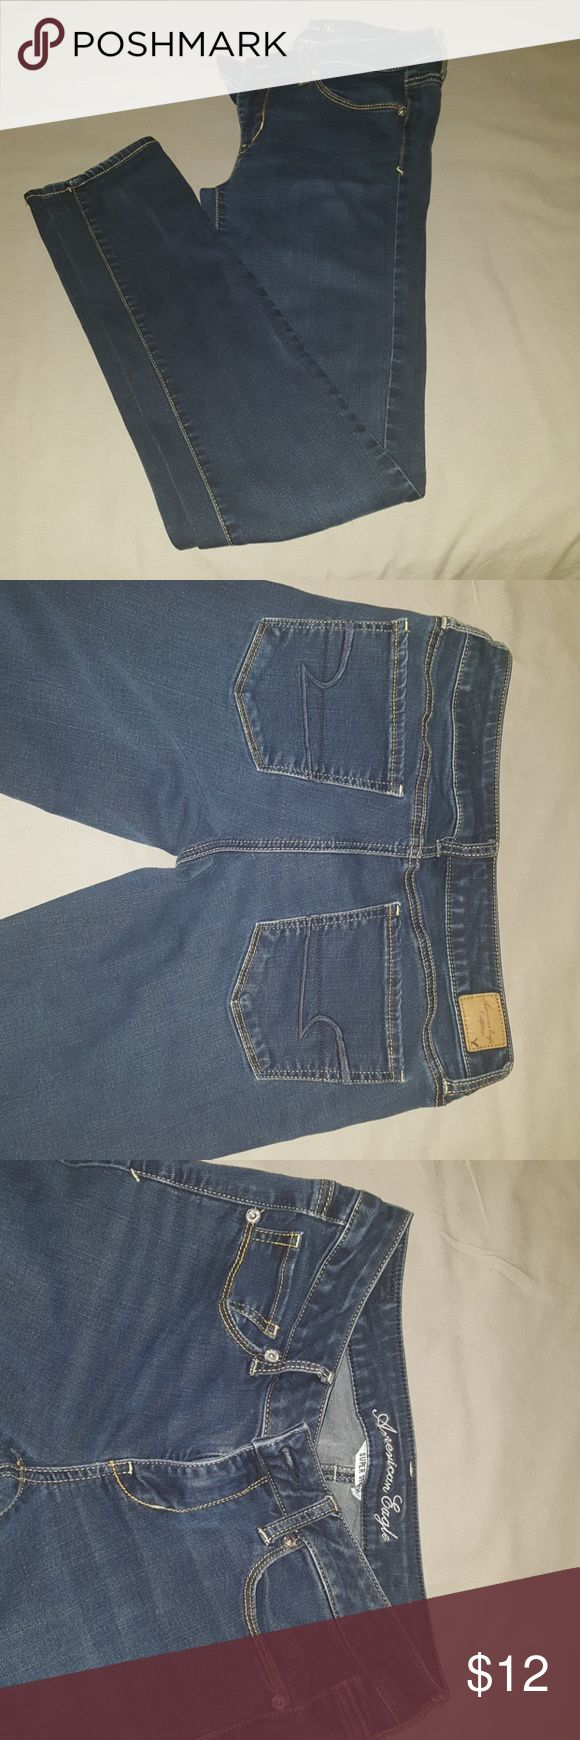 American Eagle Size 8 Long Super Stretch jeans Dark blue with gold/yellow stitching Good condition Super stretchy 28 inch waist 31 inch inseam American Eagle Outfitters Jeans Skinny